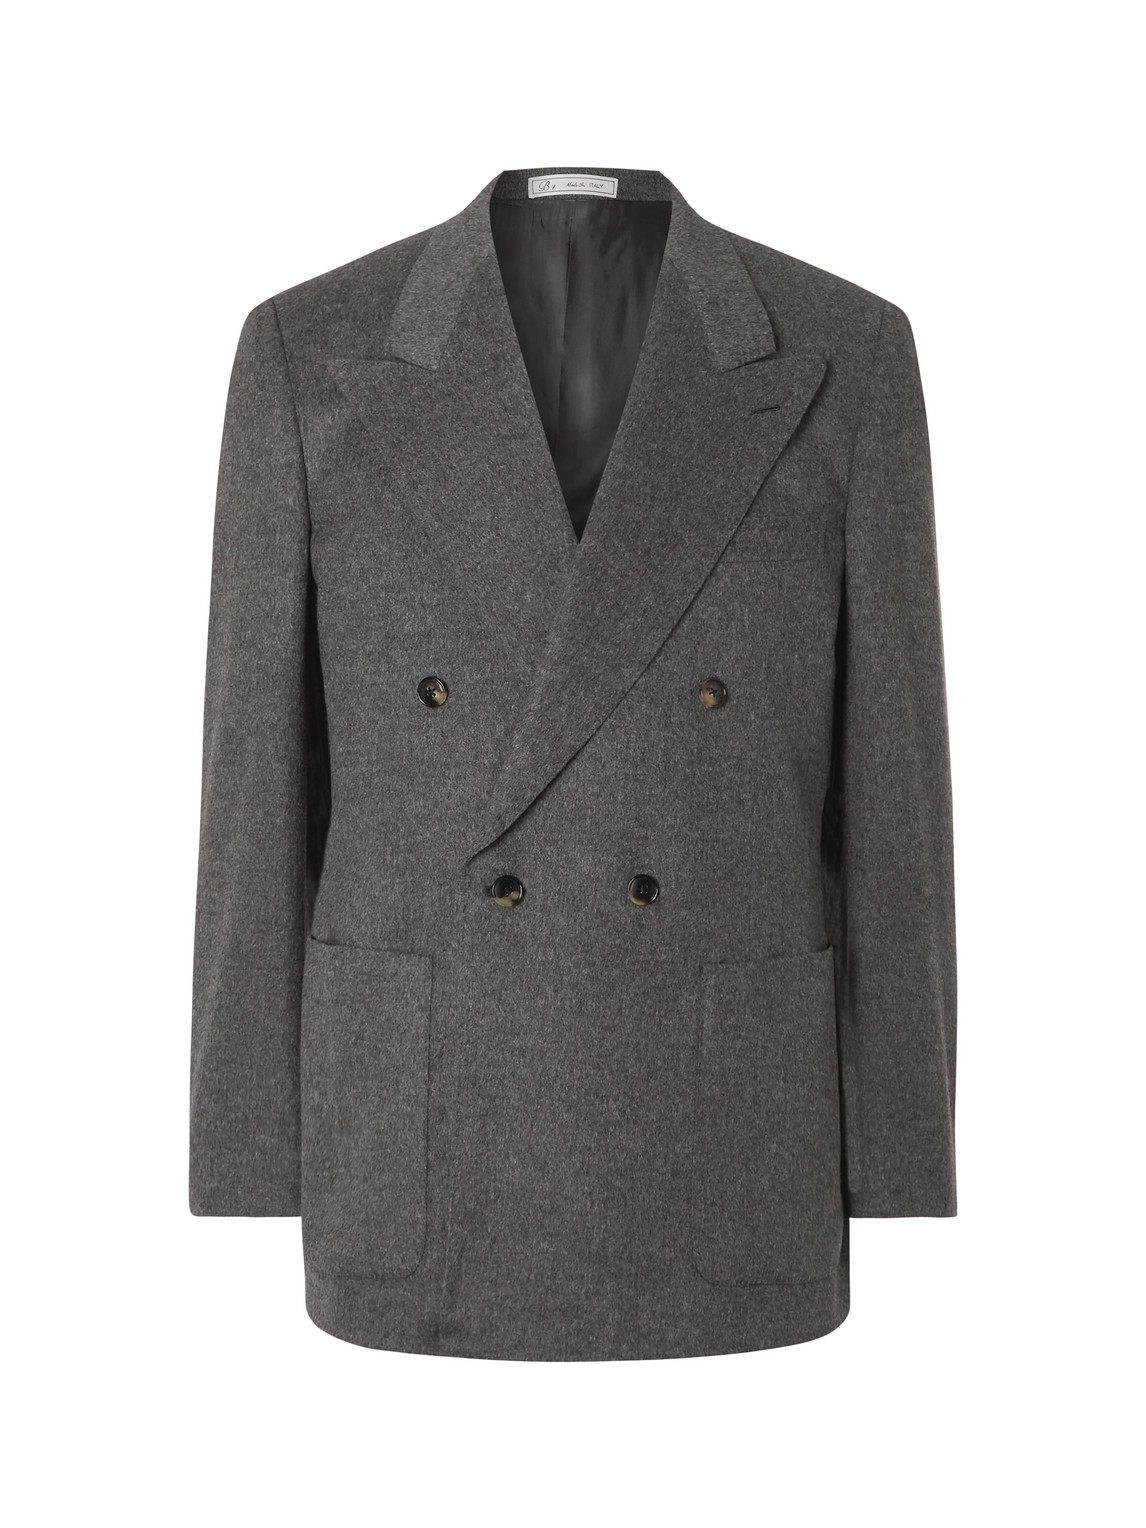 umit benan b - double-breasted camel suit jacket - men - gray - it 46